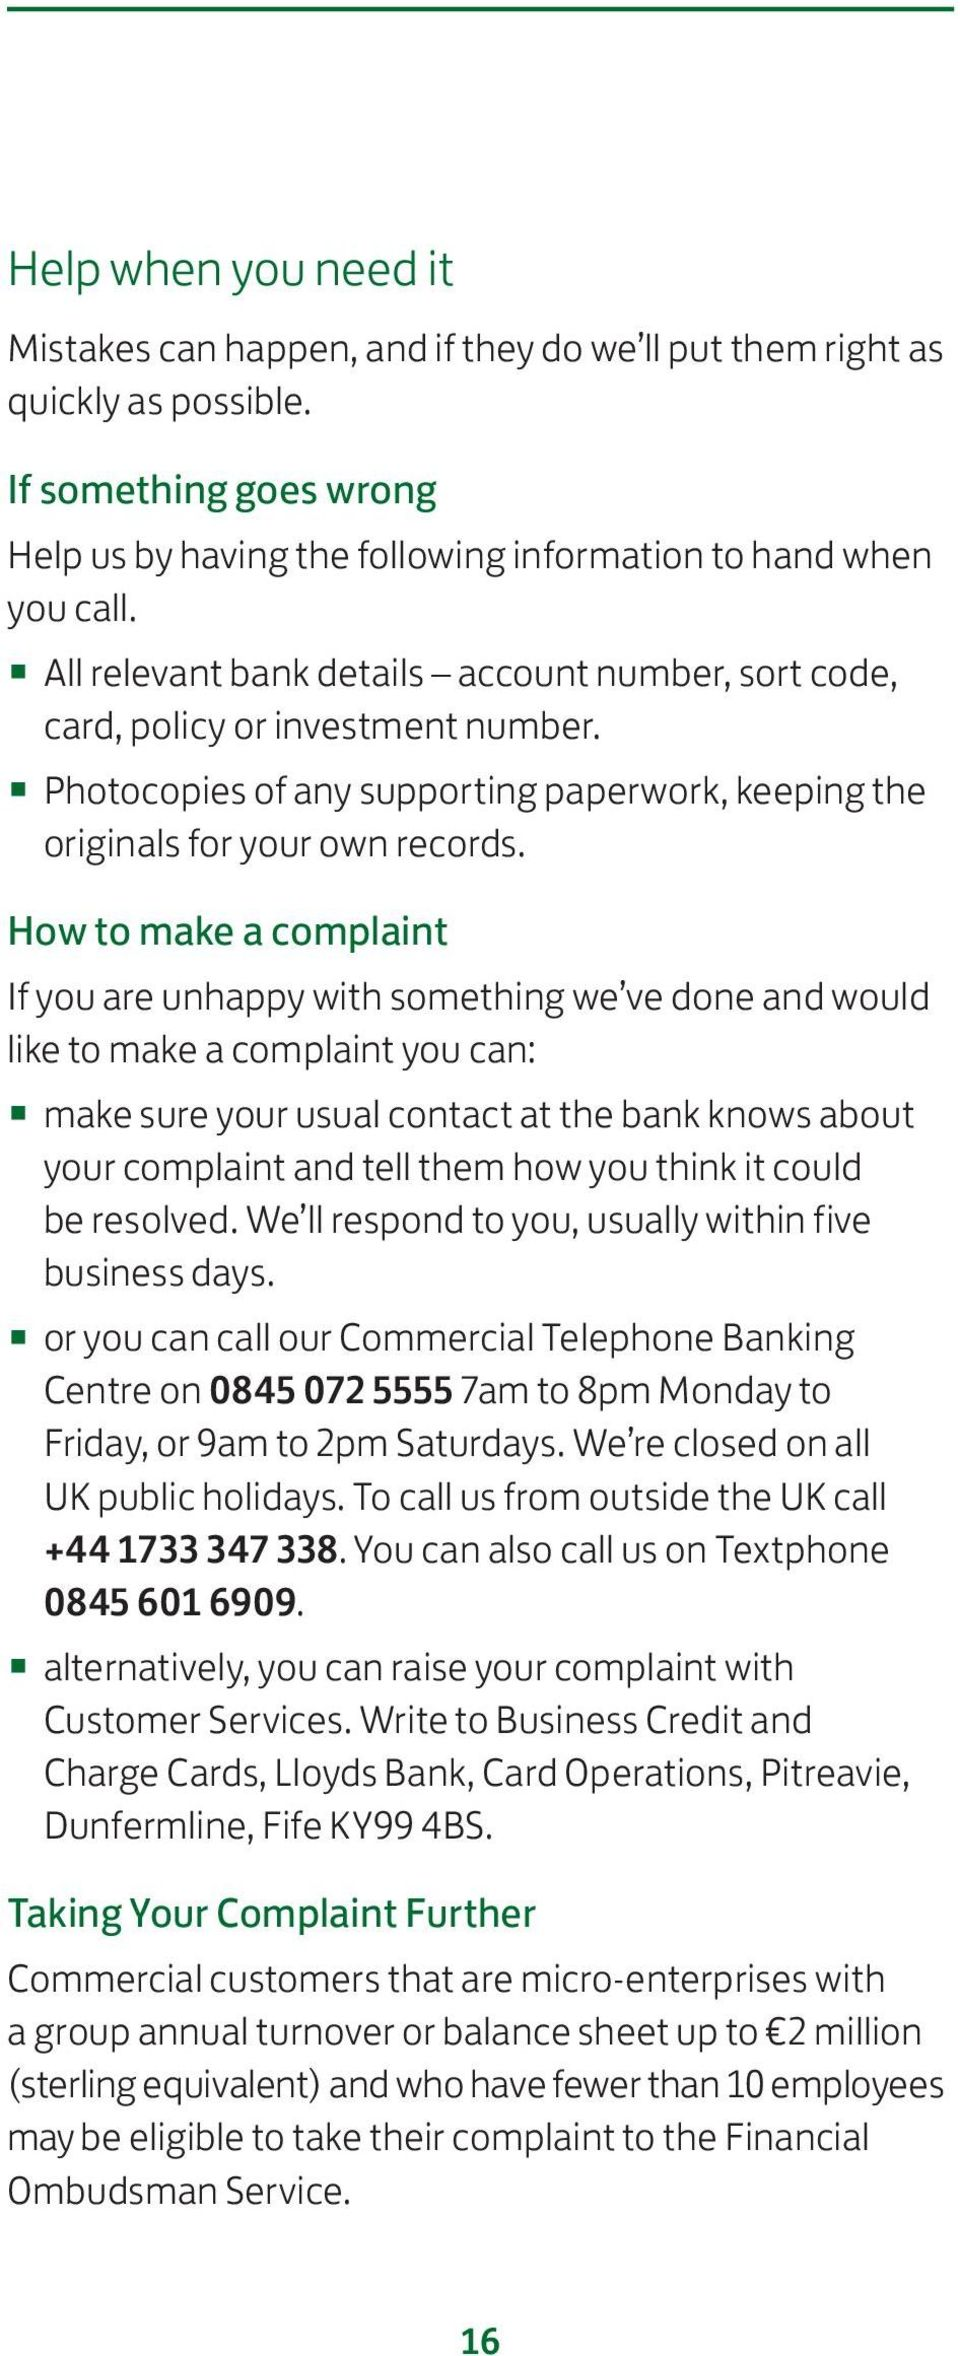 How to make a complaint If you are unhappy with something we ve done and would like to make a complaint you can: make sure your usual contact at the bank knows about your complaint and tell them how